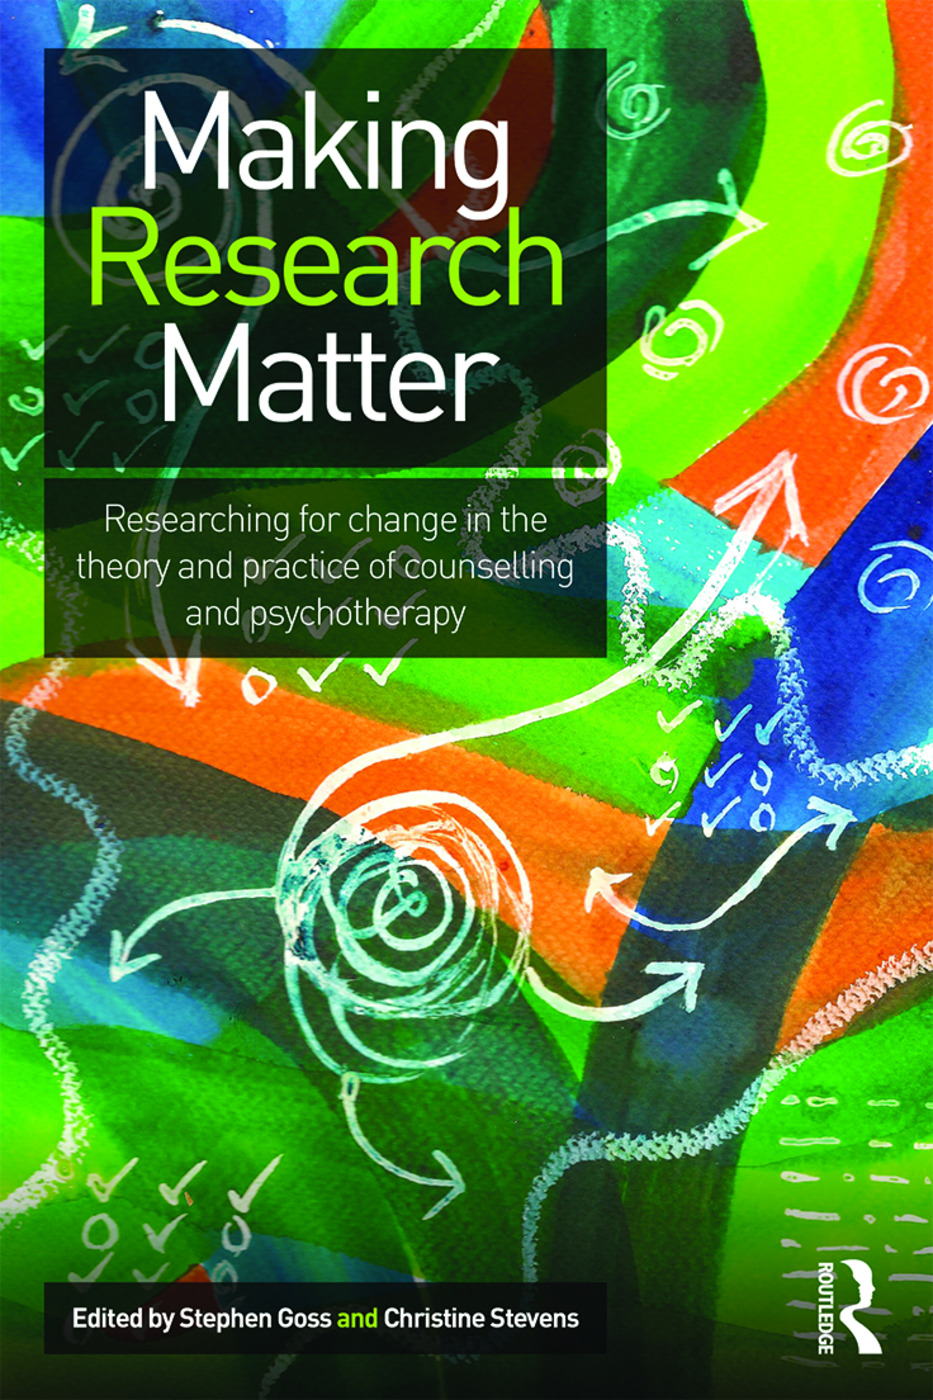 Making Research Matter: Researching for change in the theory and practice of counselling and psychotherapy (Paperback) book cover